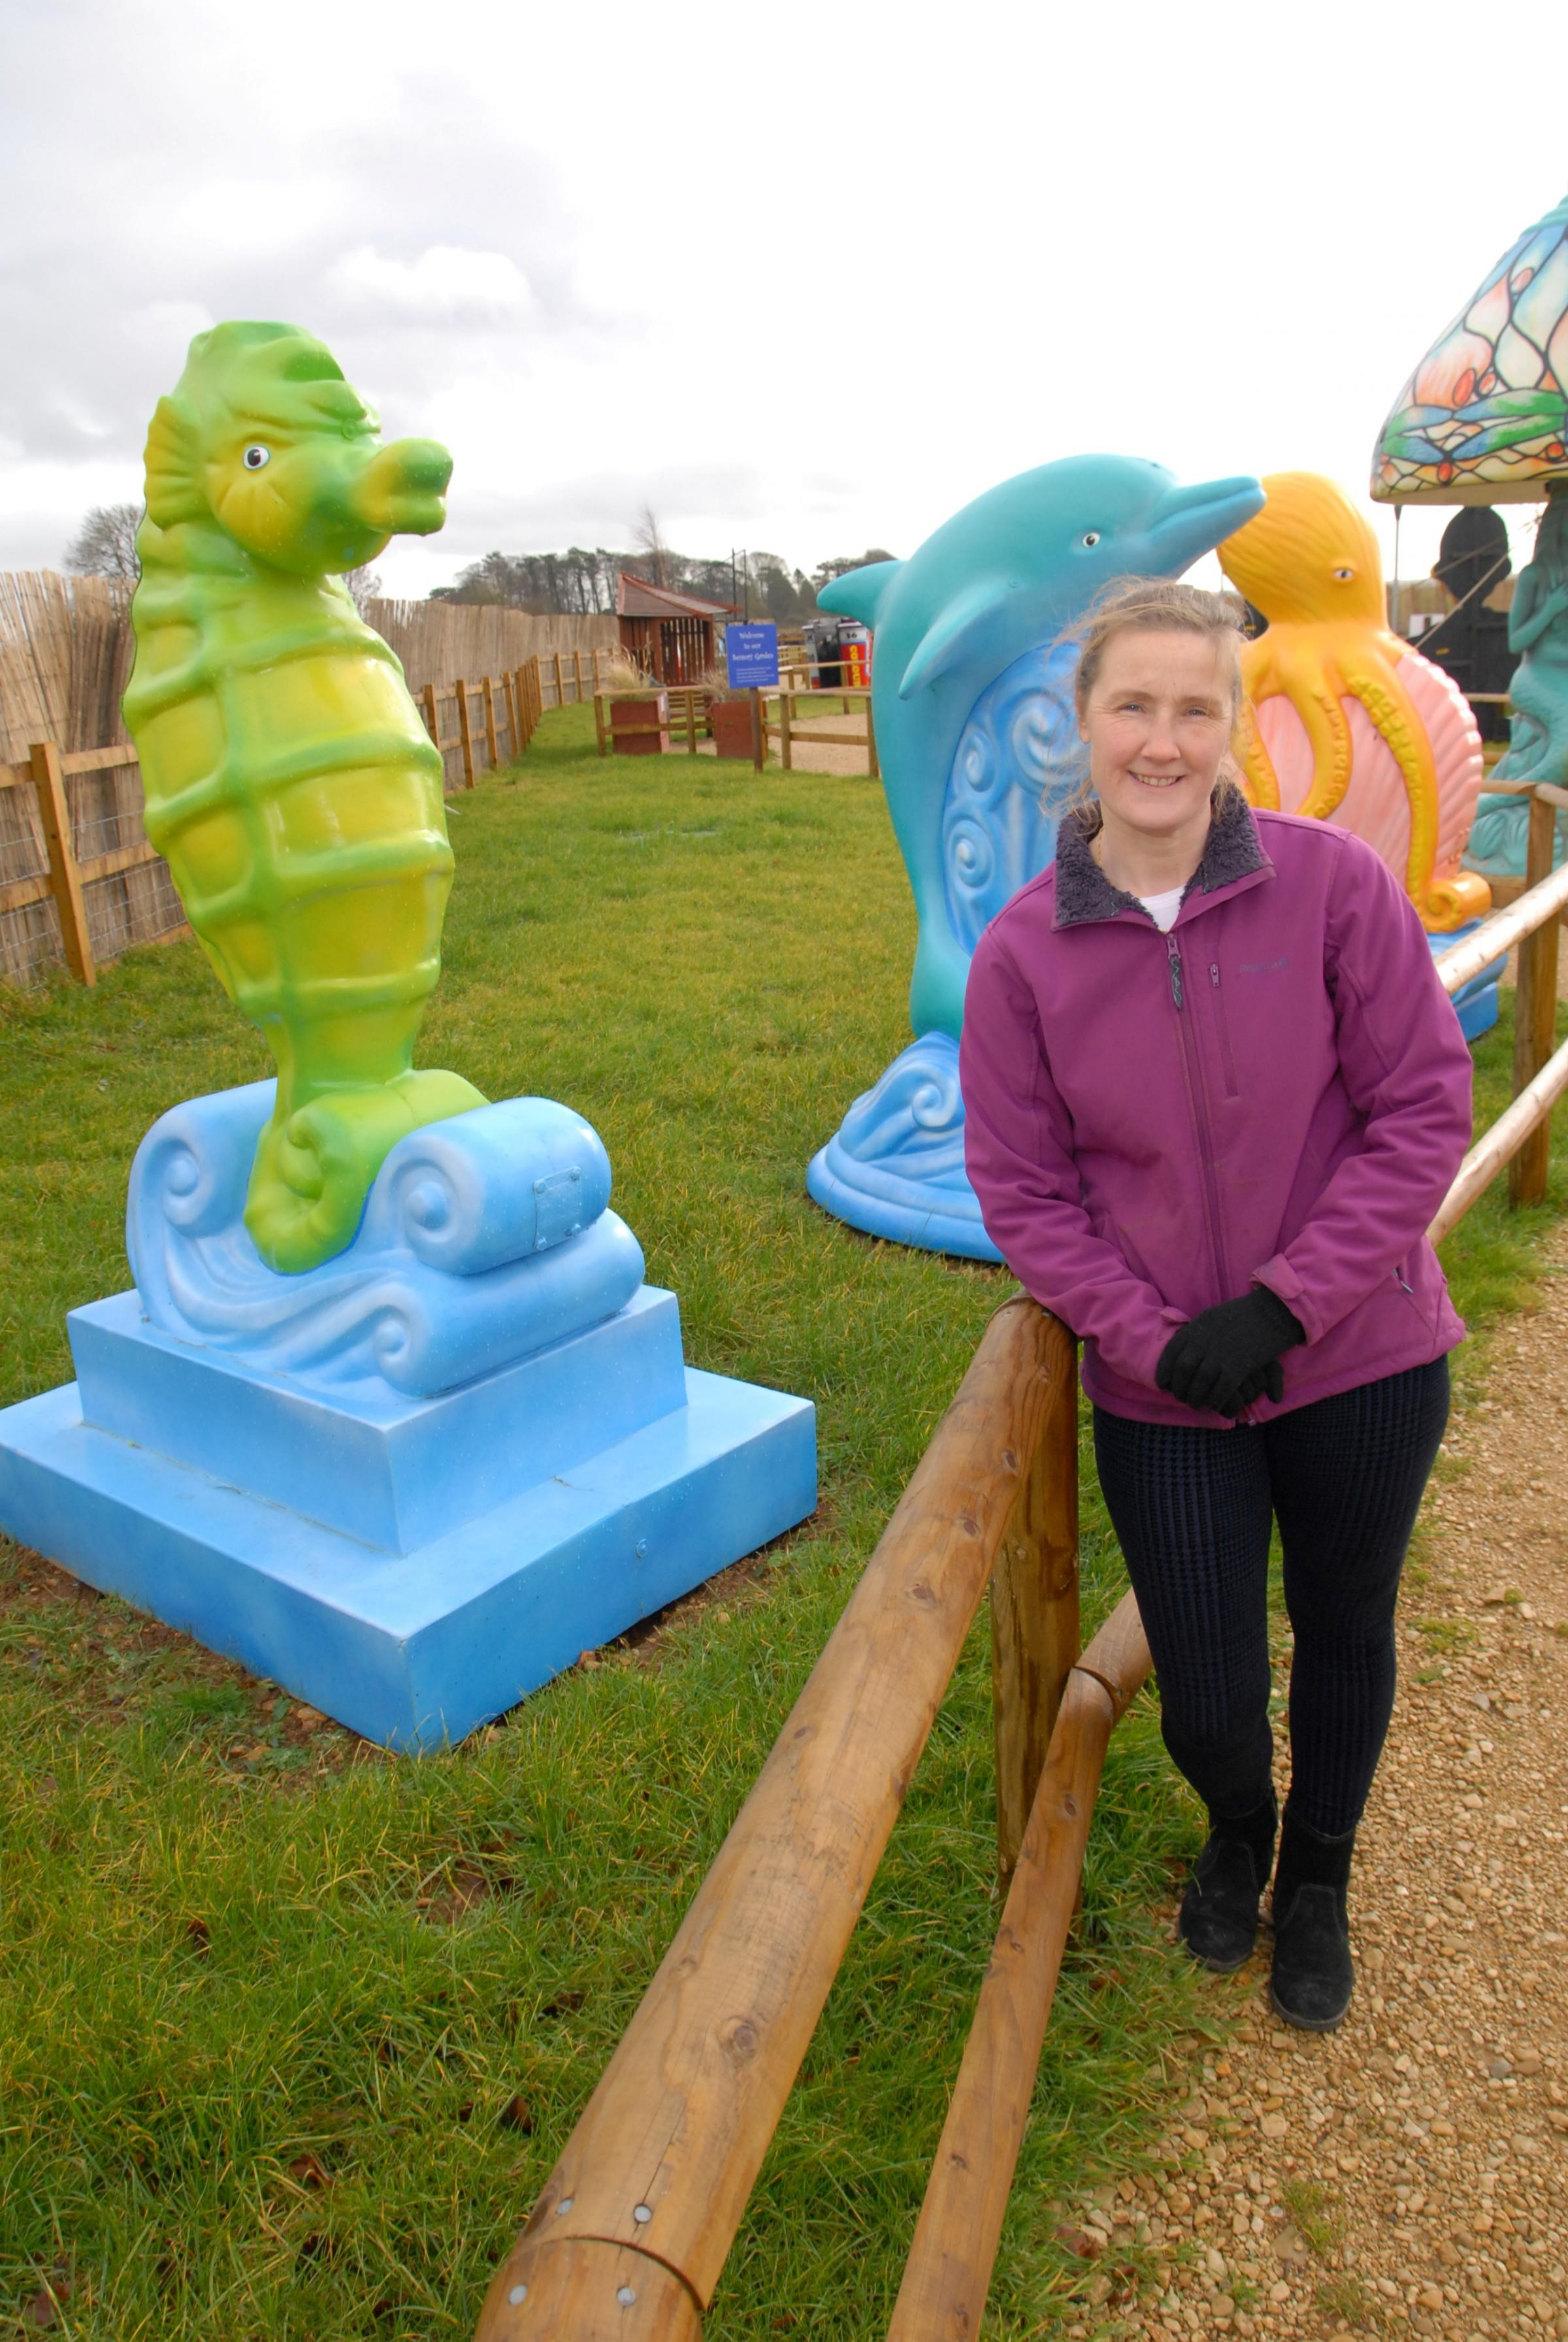 New attractions at Fairytale Farm